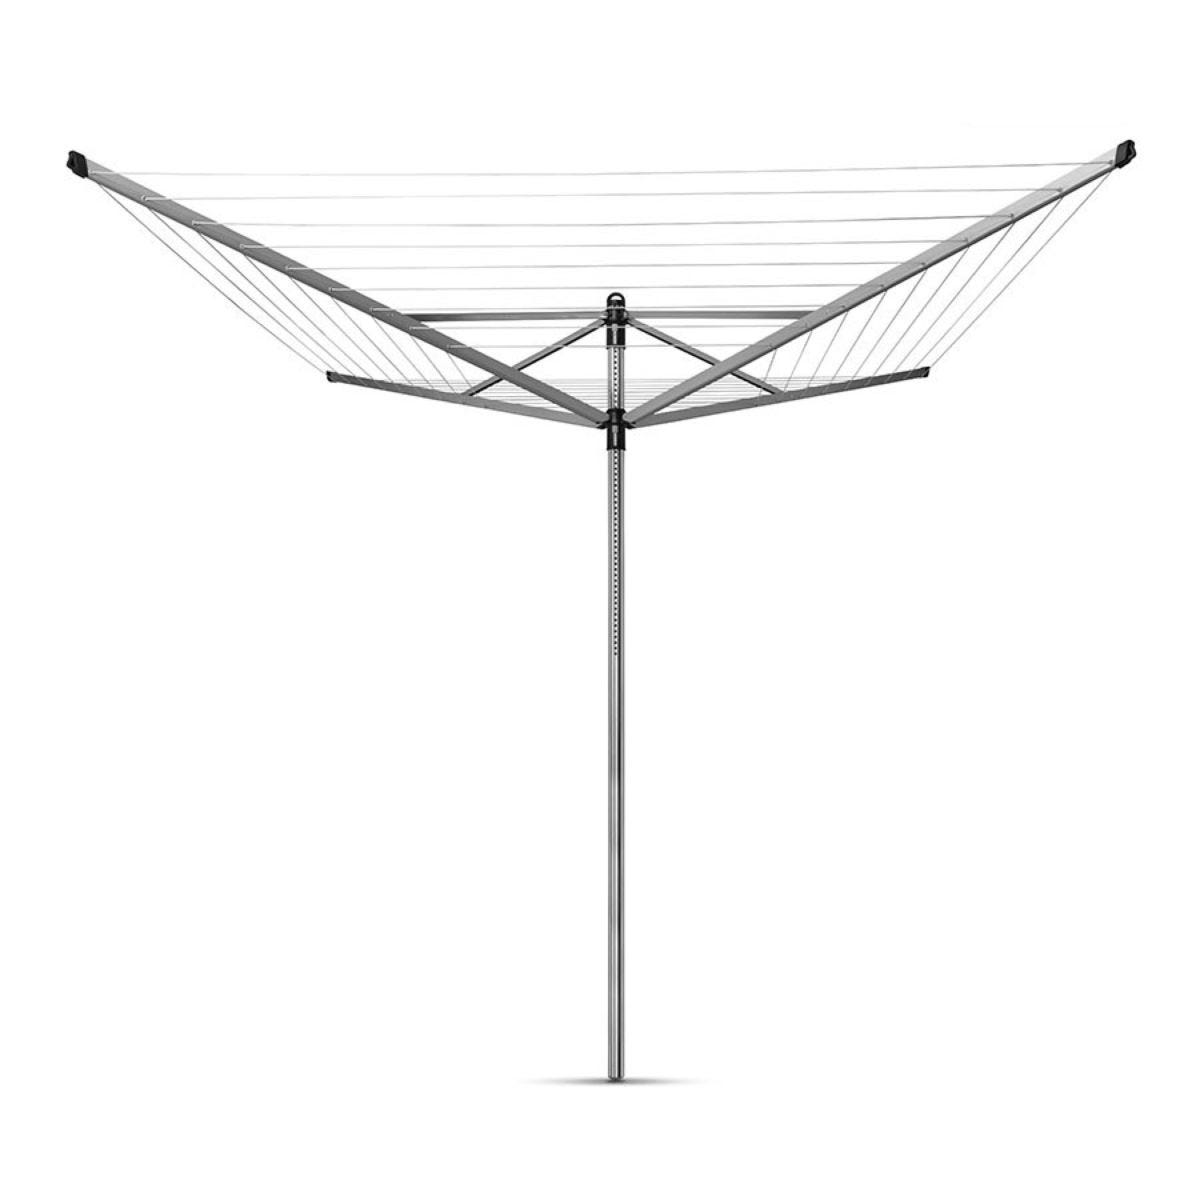 Brabantia Lift-O-Matic 50m 4-Arm Rotary Airer with Ground Spike